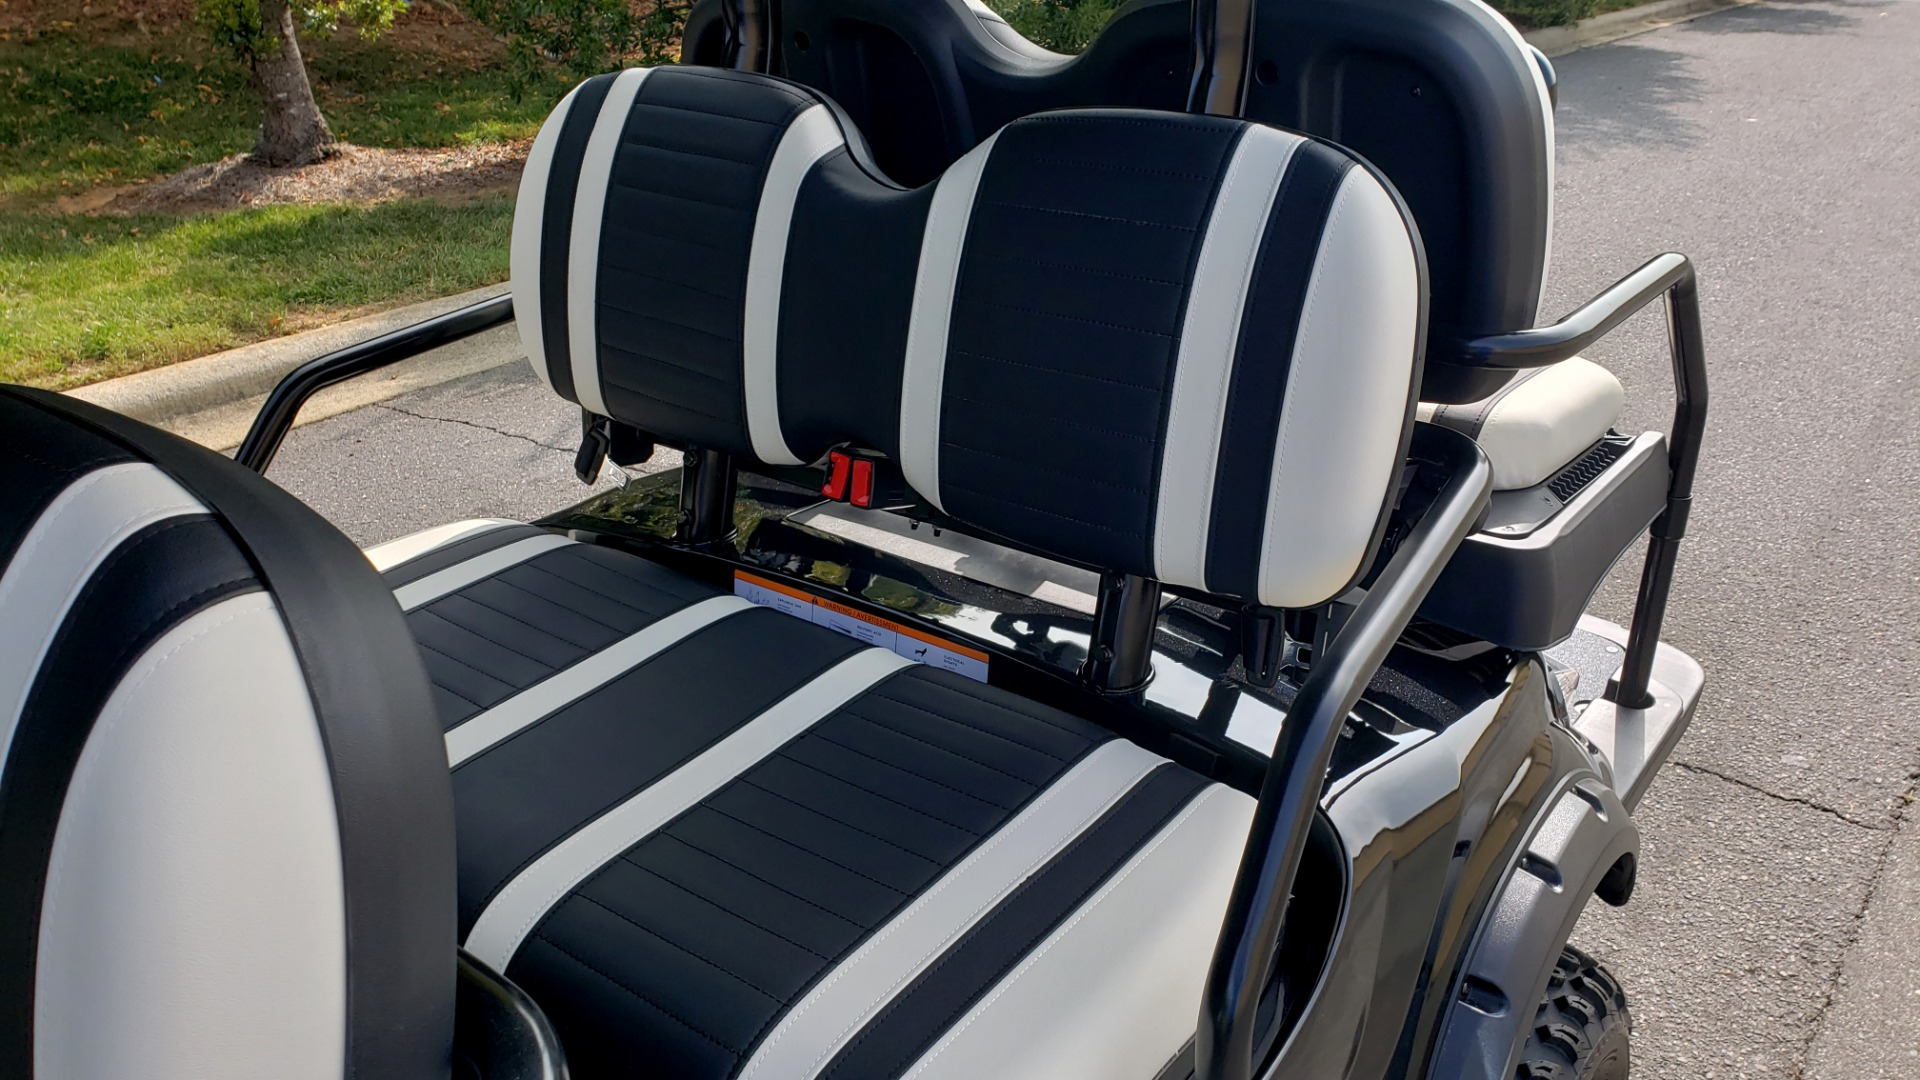 Used 2020 ICON I60L ELECTRIC CAR 3-ROW/6-PASSENGER/LIFTED for sale $10,995 at Formula Imports in Charlotte NC 28227 11